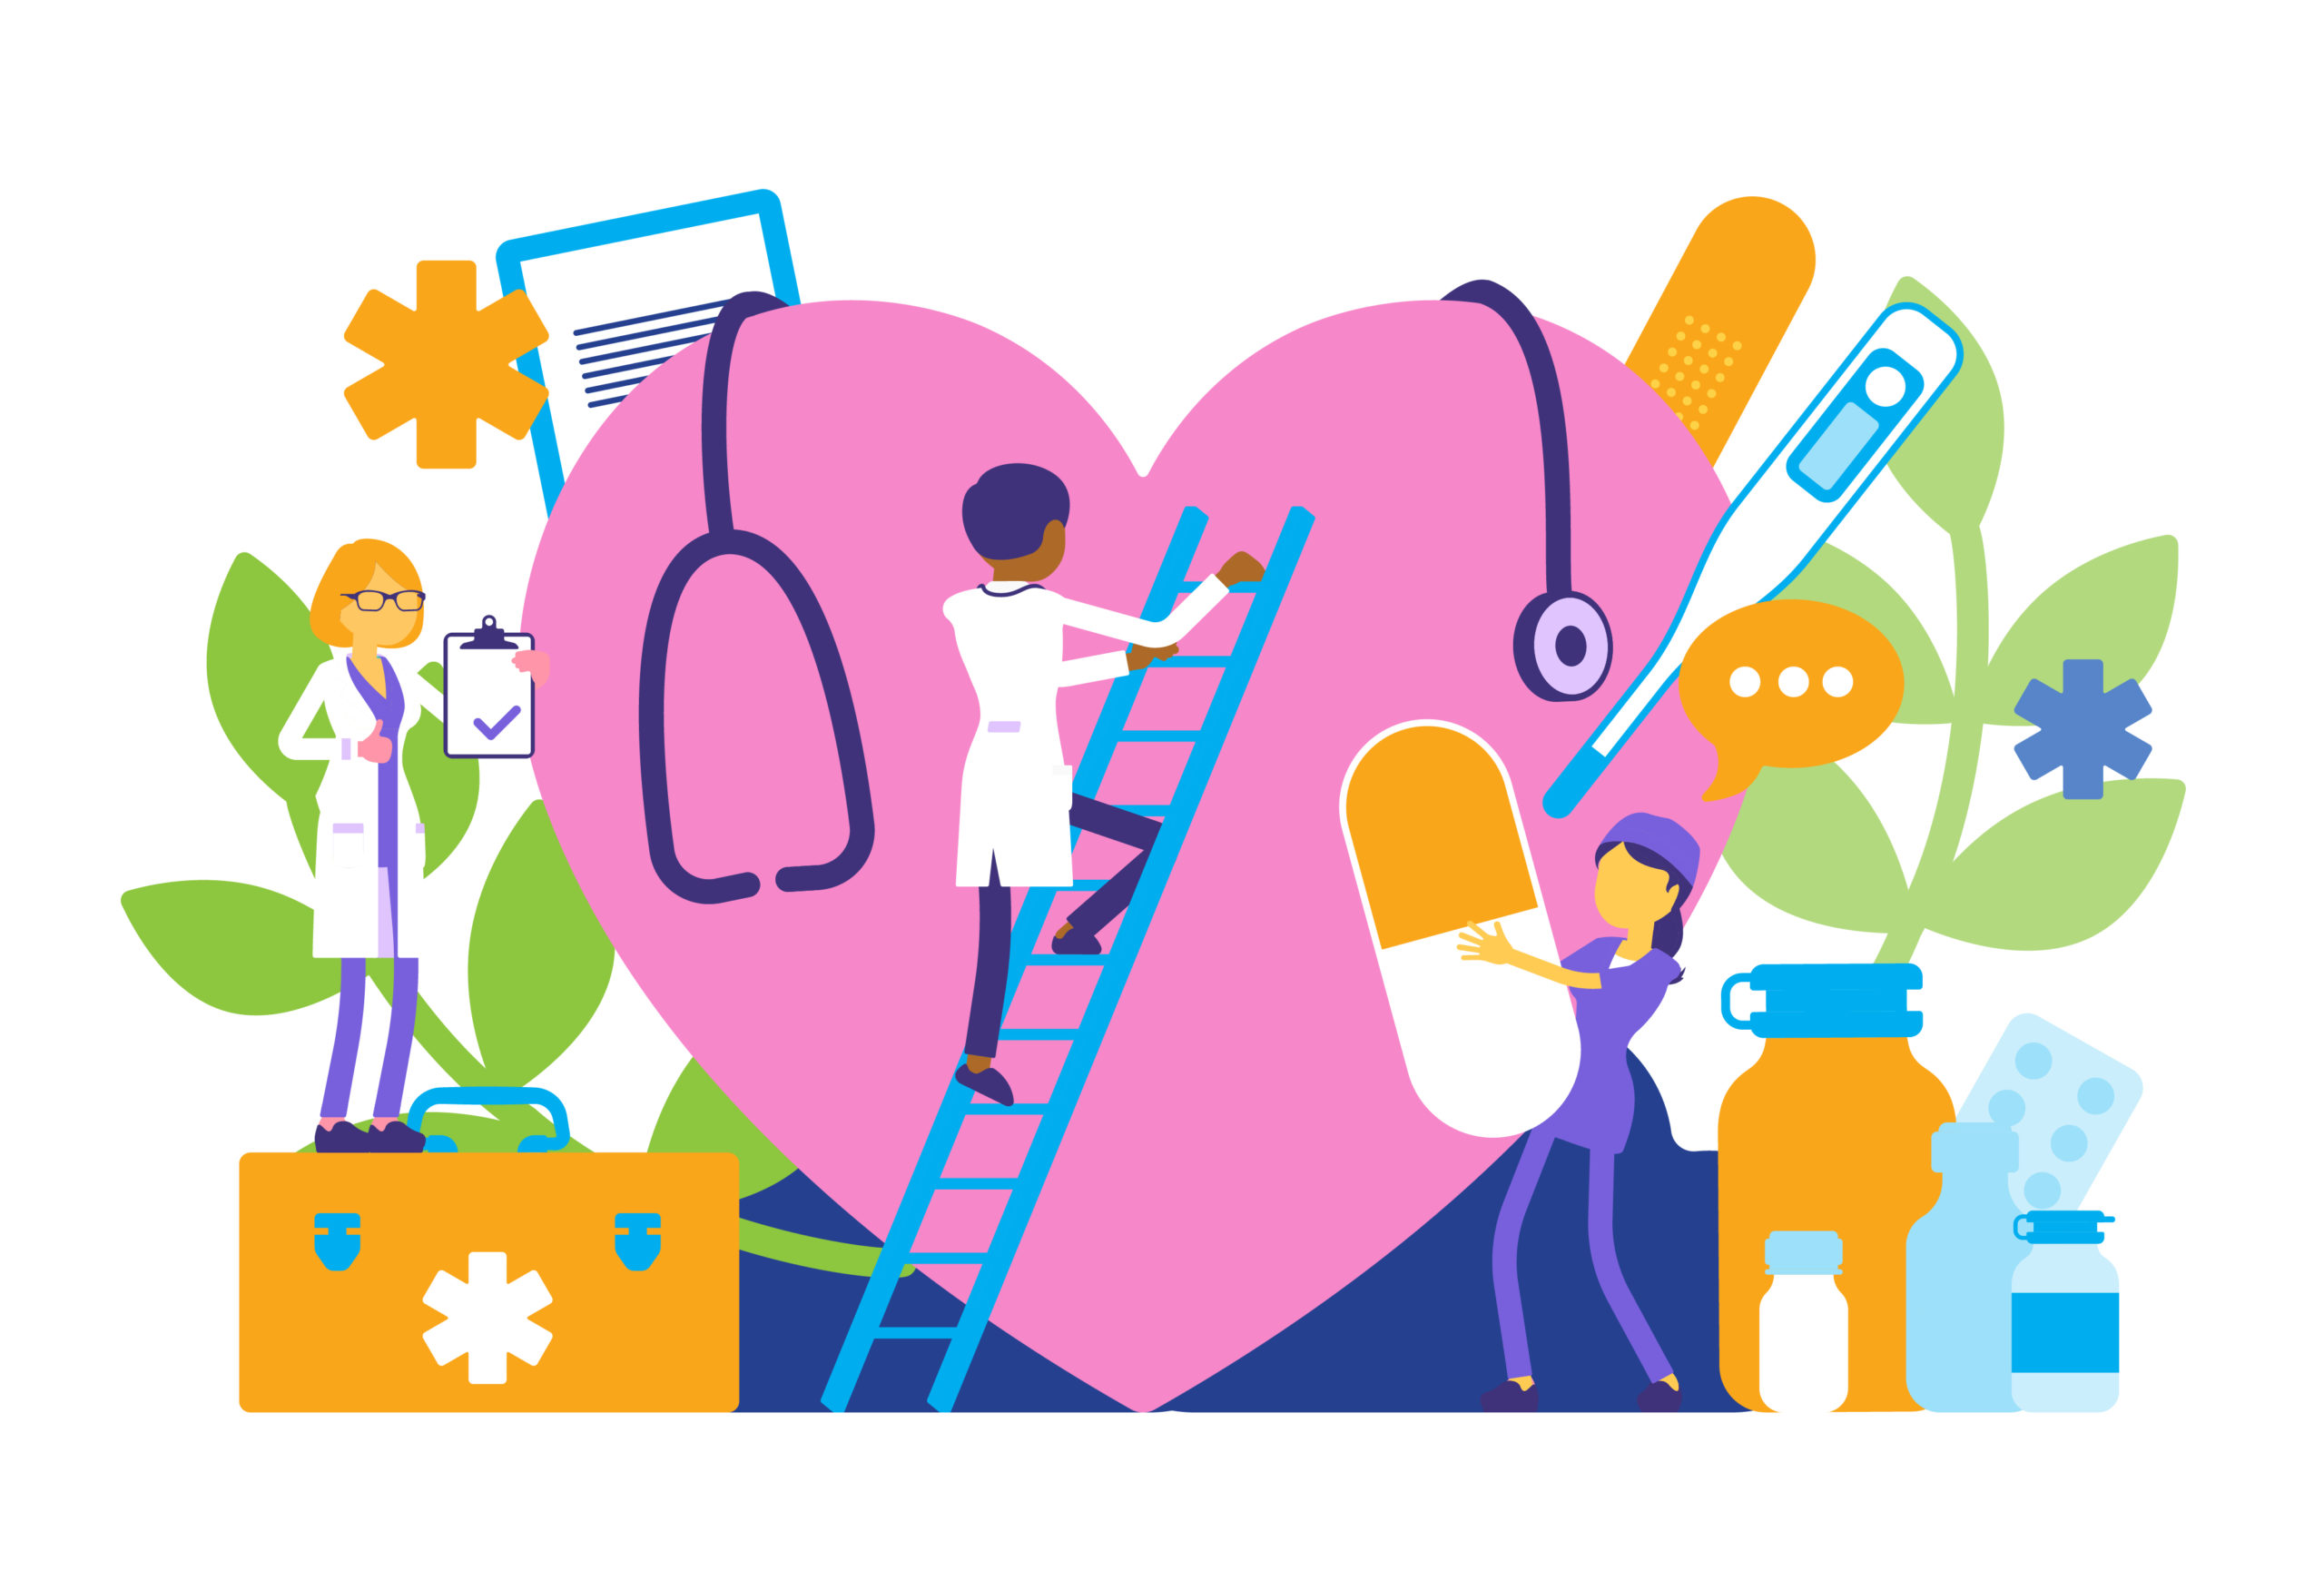 Accessible mindfulness practices, meditations, and resources for healthcare workers - Illustration of a healthcares tending to a cartoon heart